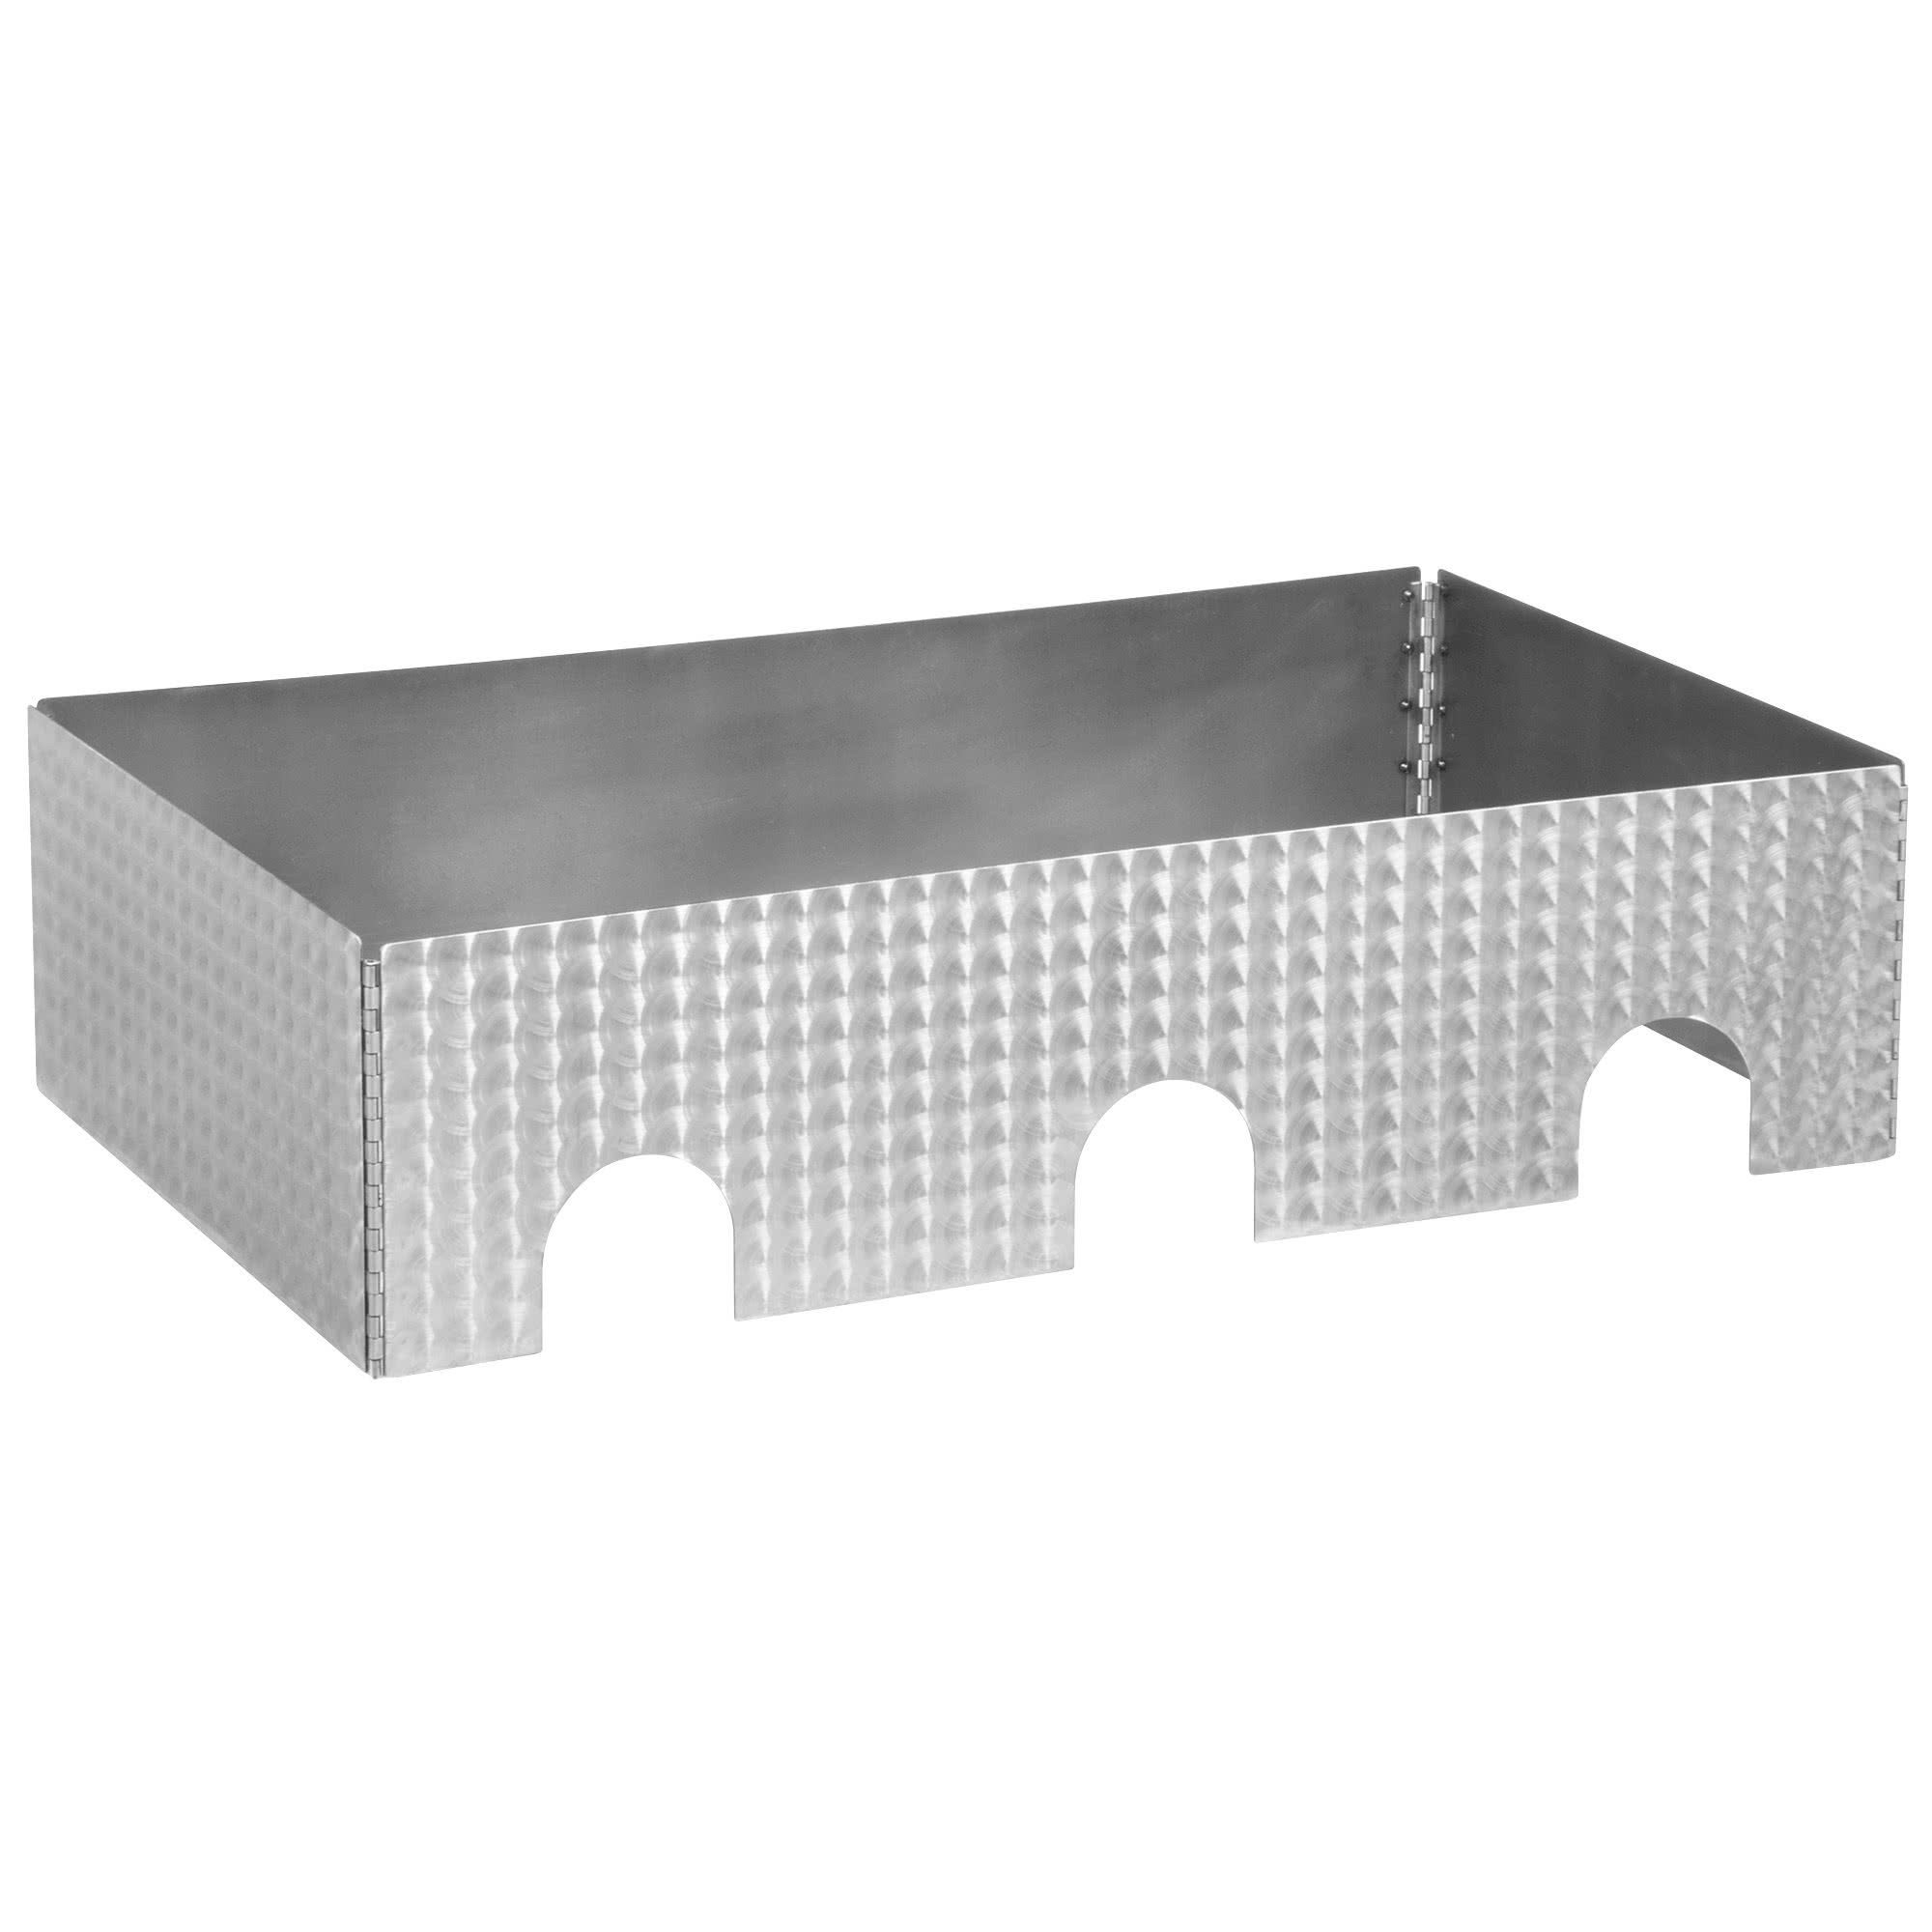 TableTop king Caterware CW603CSS 3-Well Collapsible 16 Gauge Circle Swirl Stainless Steel Server - 38 1/2'' x 20 1/2'' x 10''